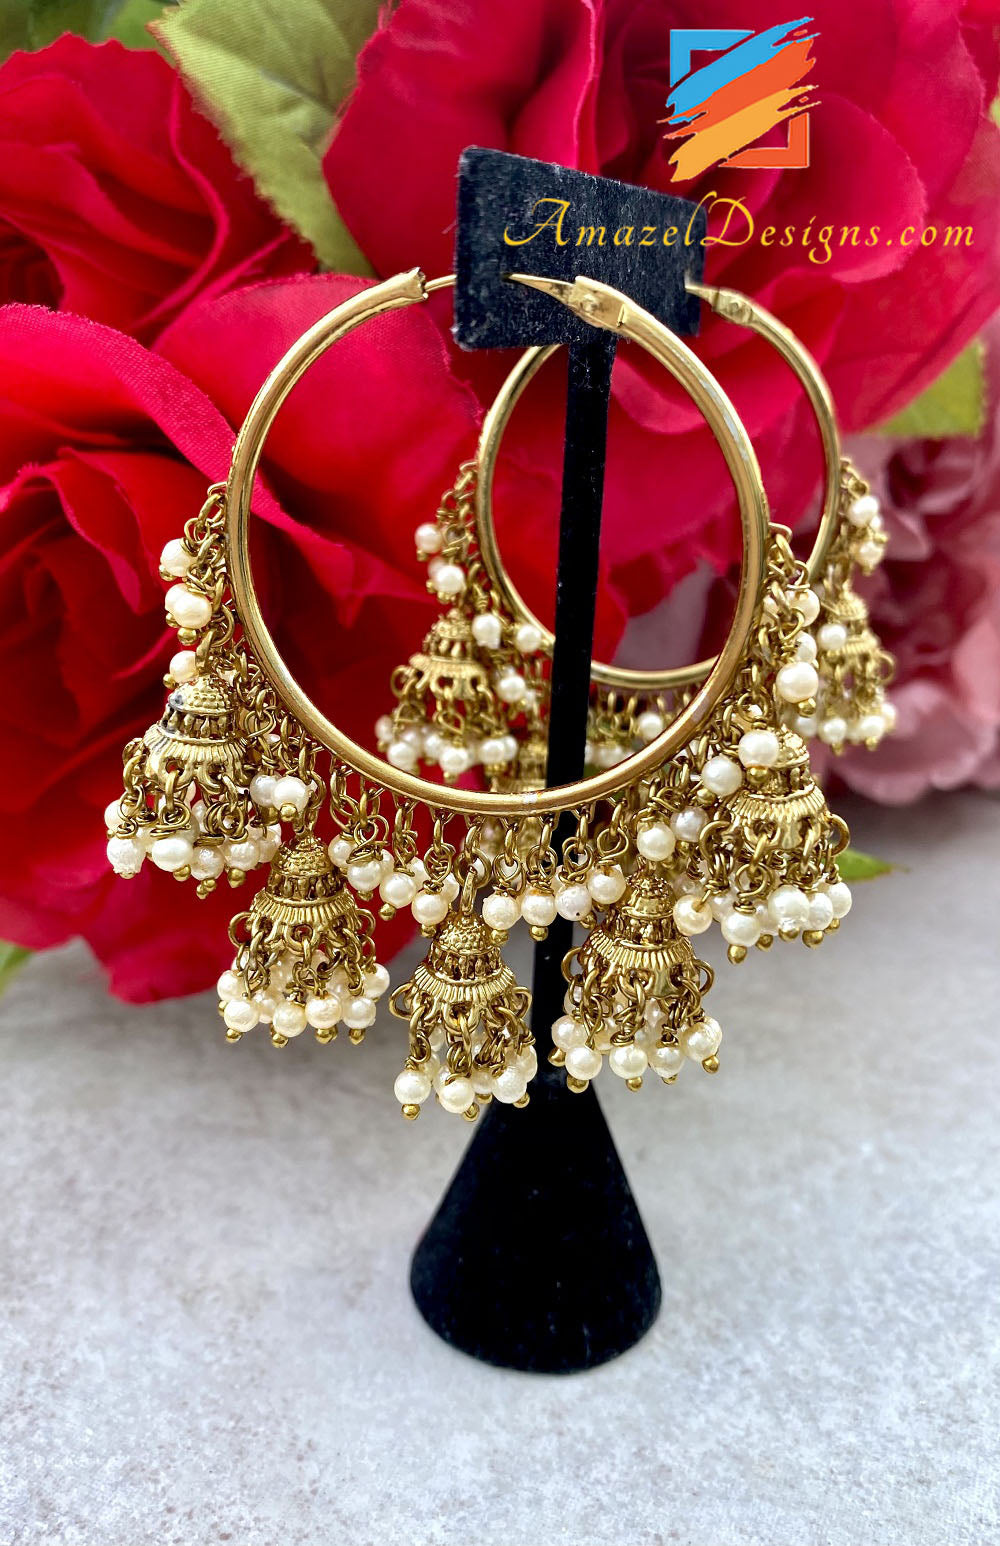 Waliyaan With Bunches of Beads and Jhumkis